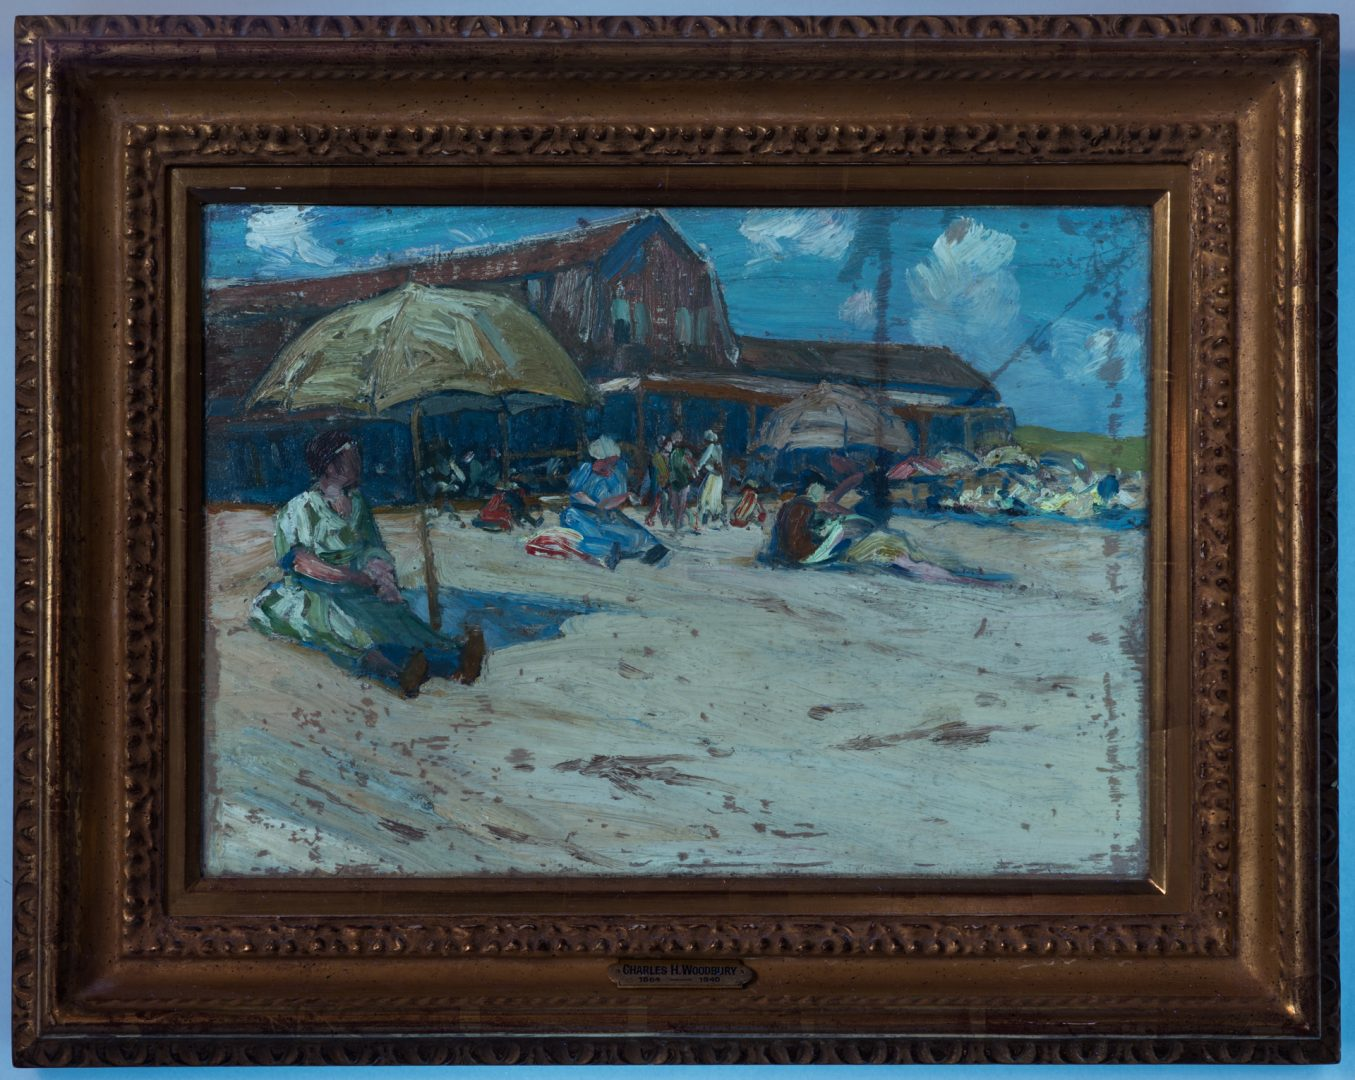 Lot 118: Charles Woodbury O/C, Ogunquit Bath House